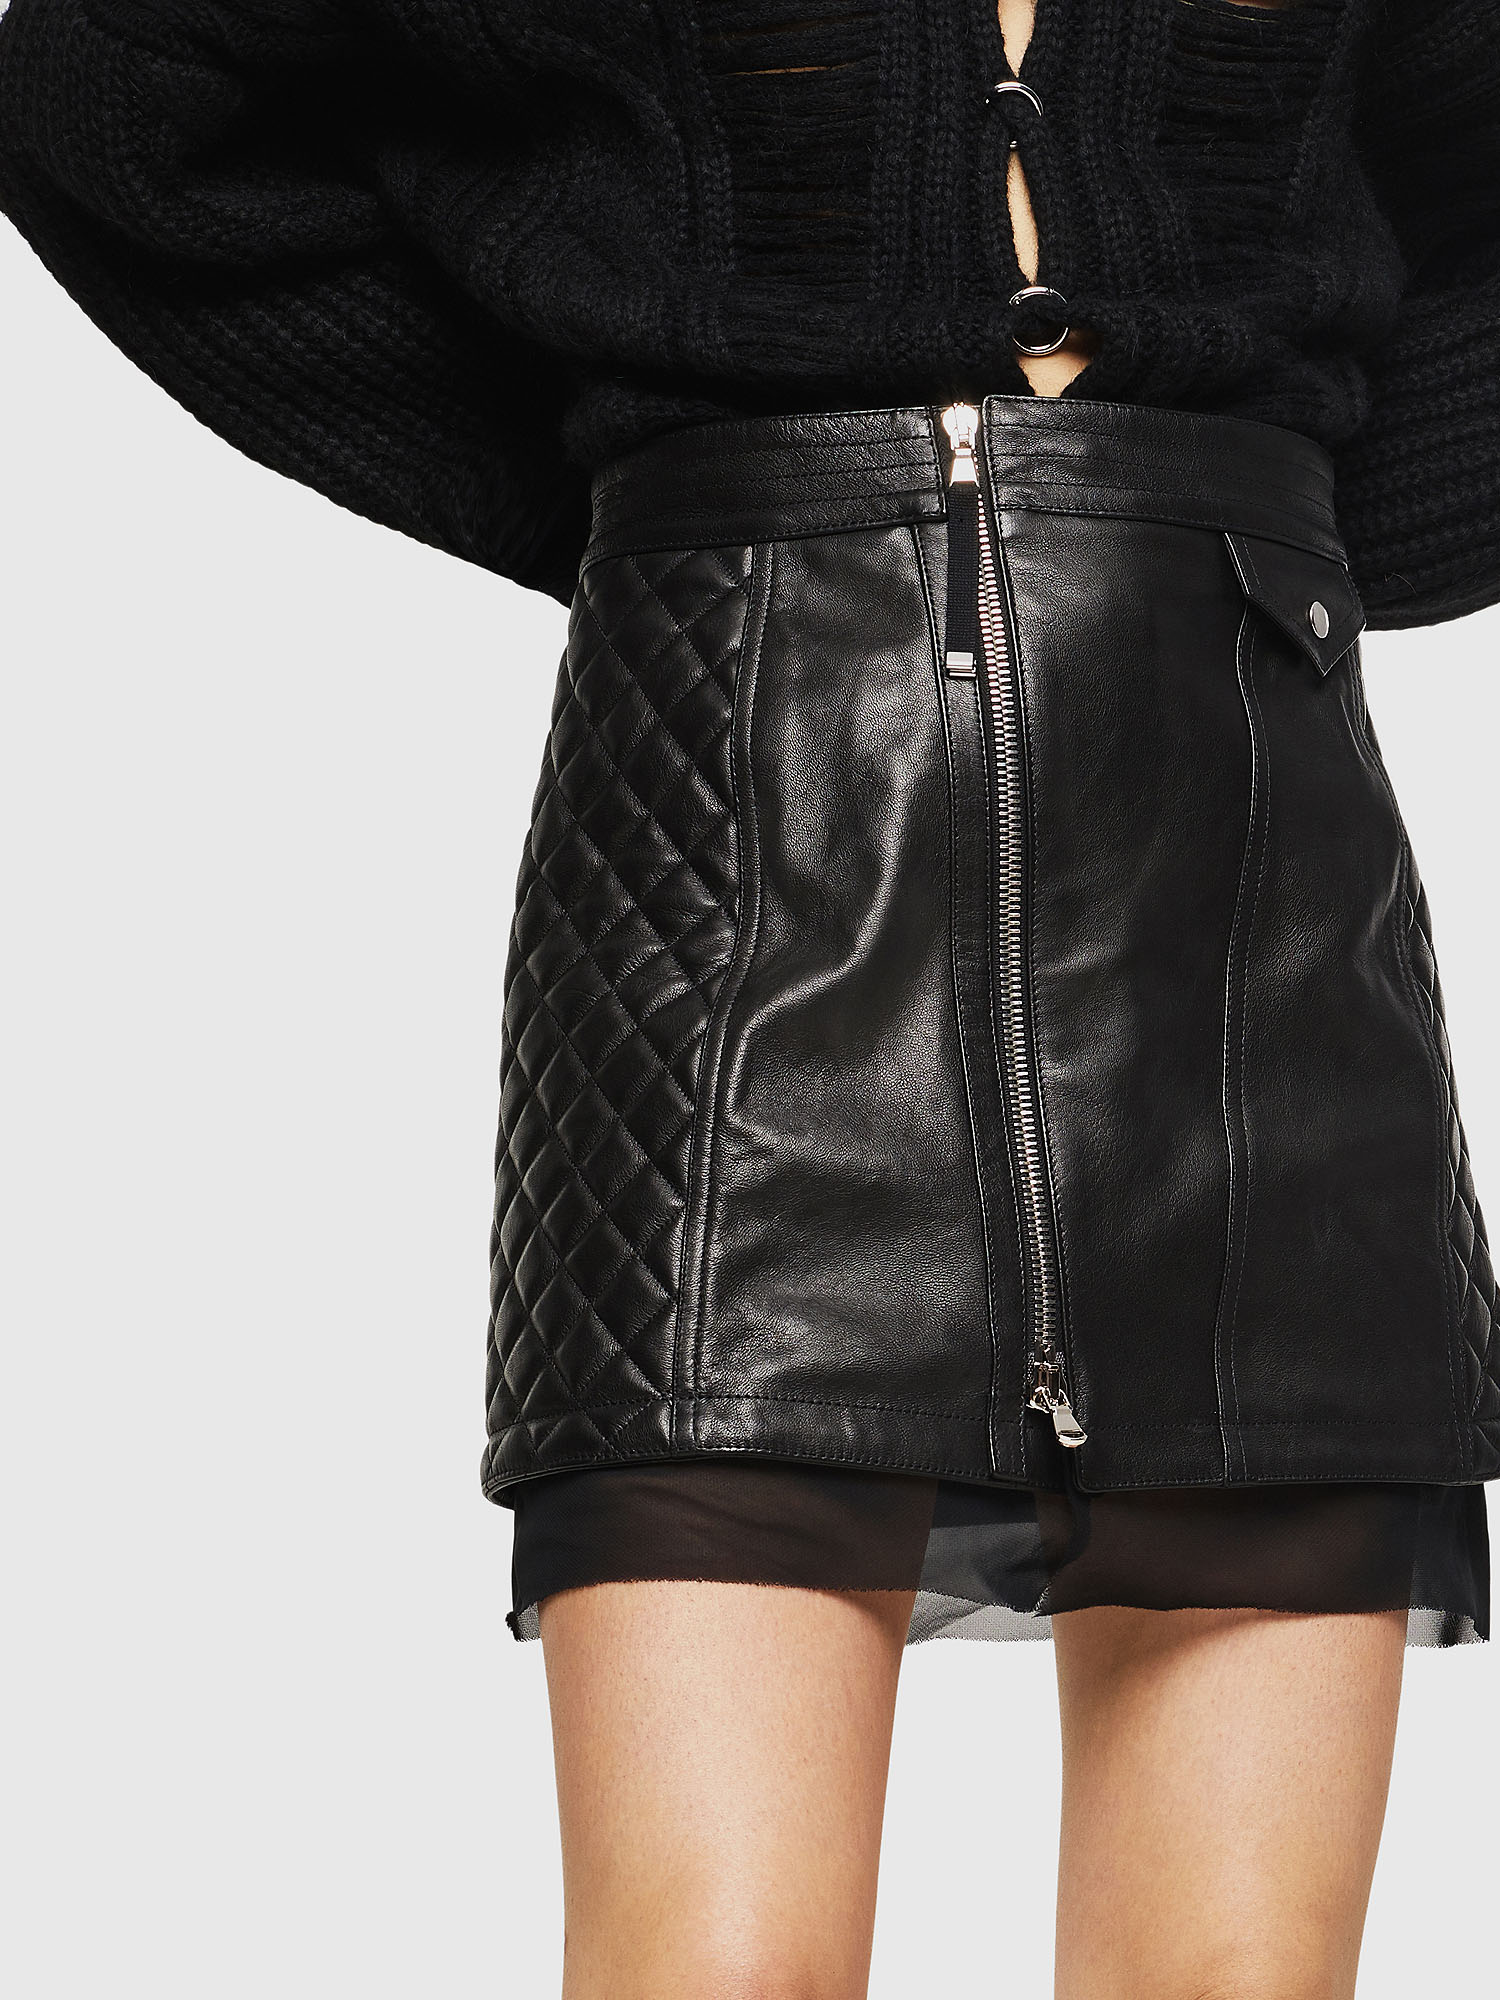 Diesel - OLESIA,  - Leather skirts - Image 3